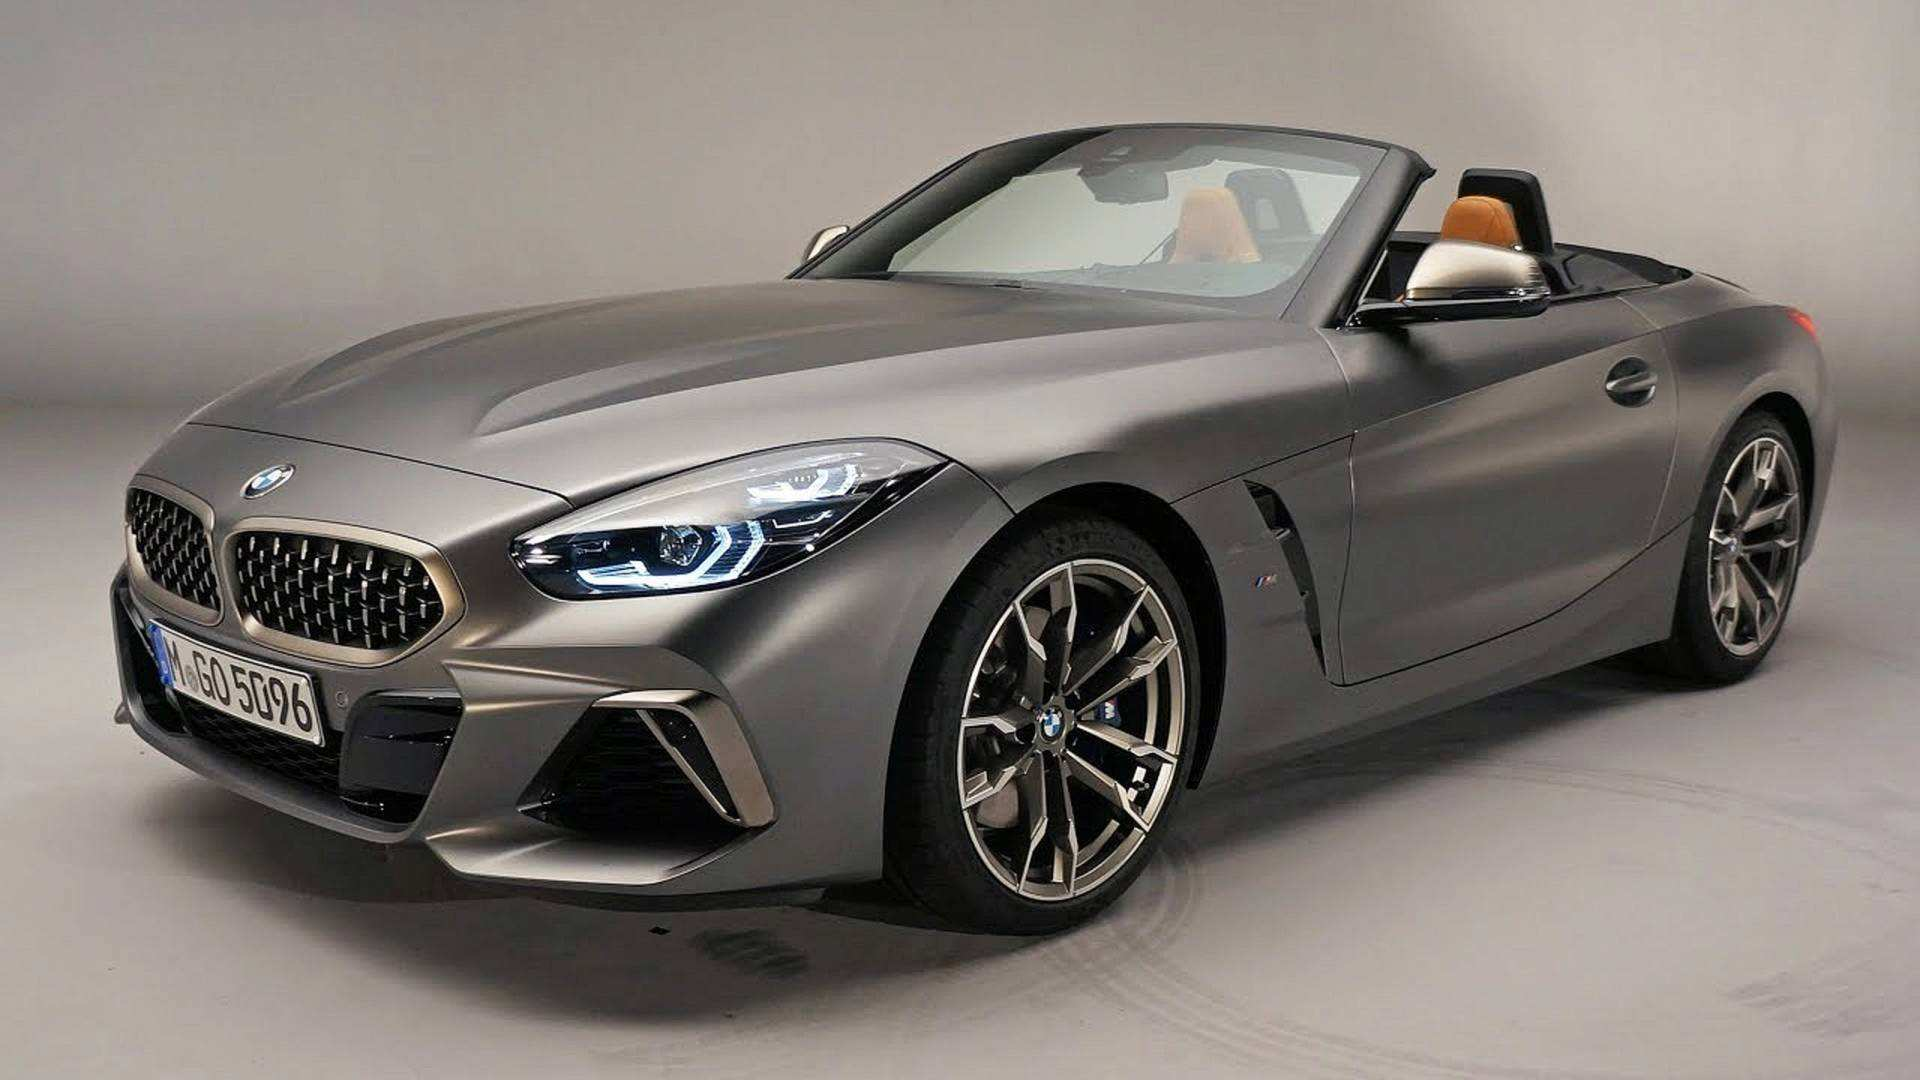 31 New 2019 Bmw Z4 Engine History